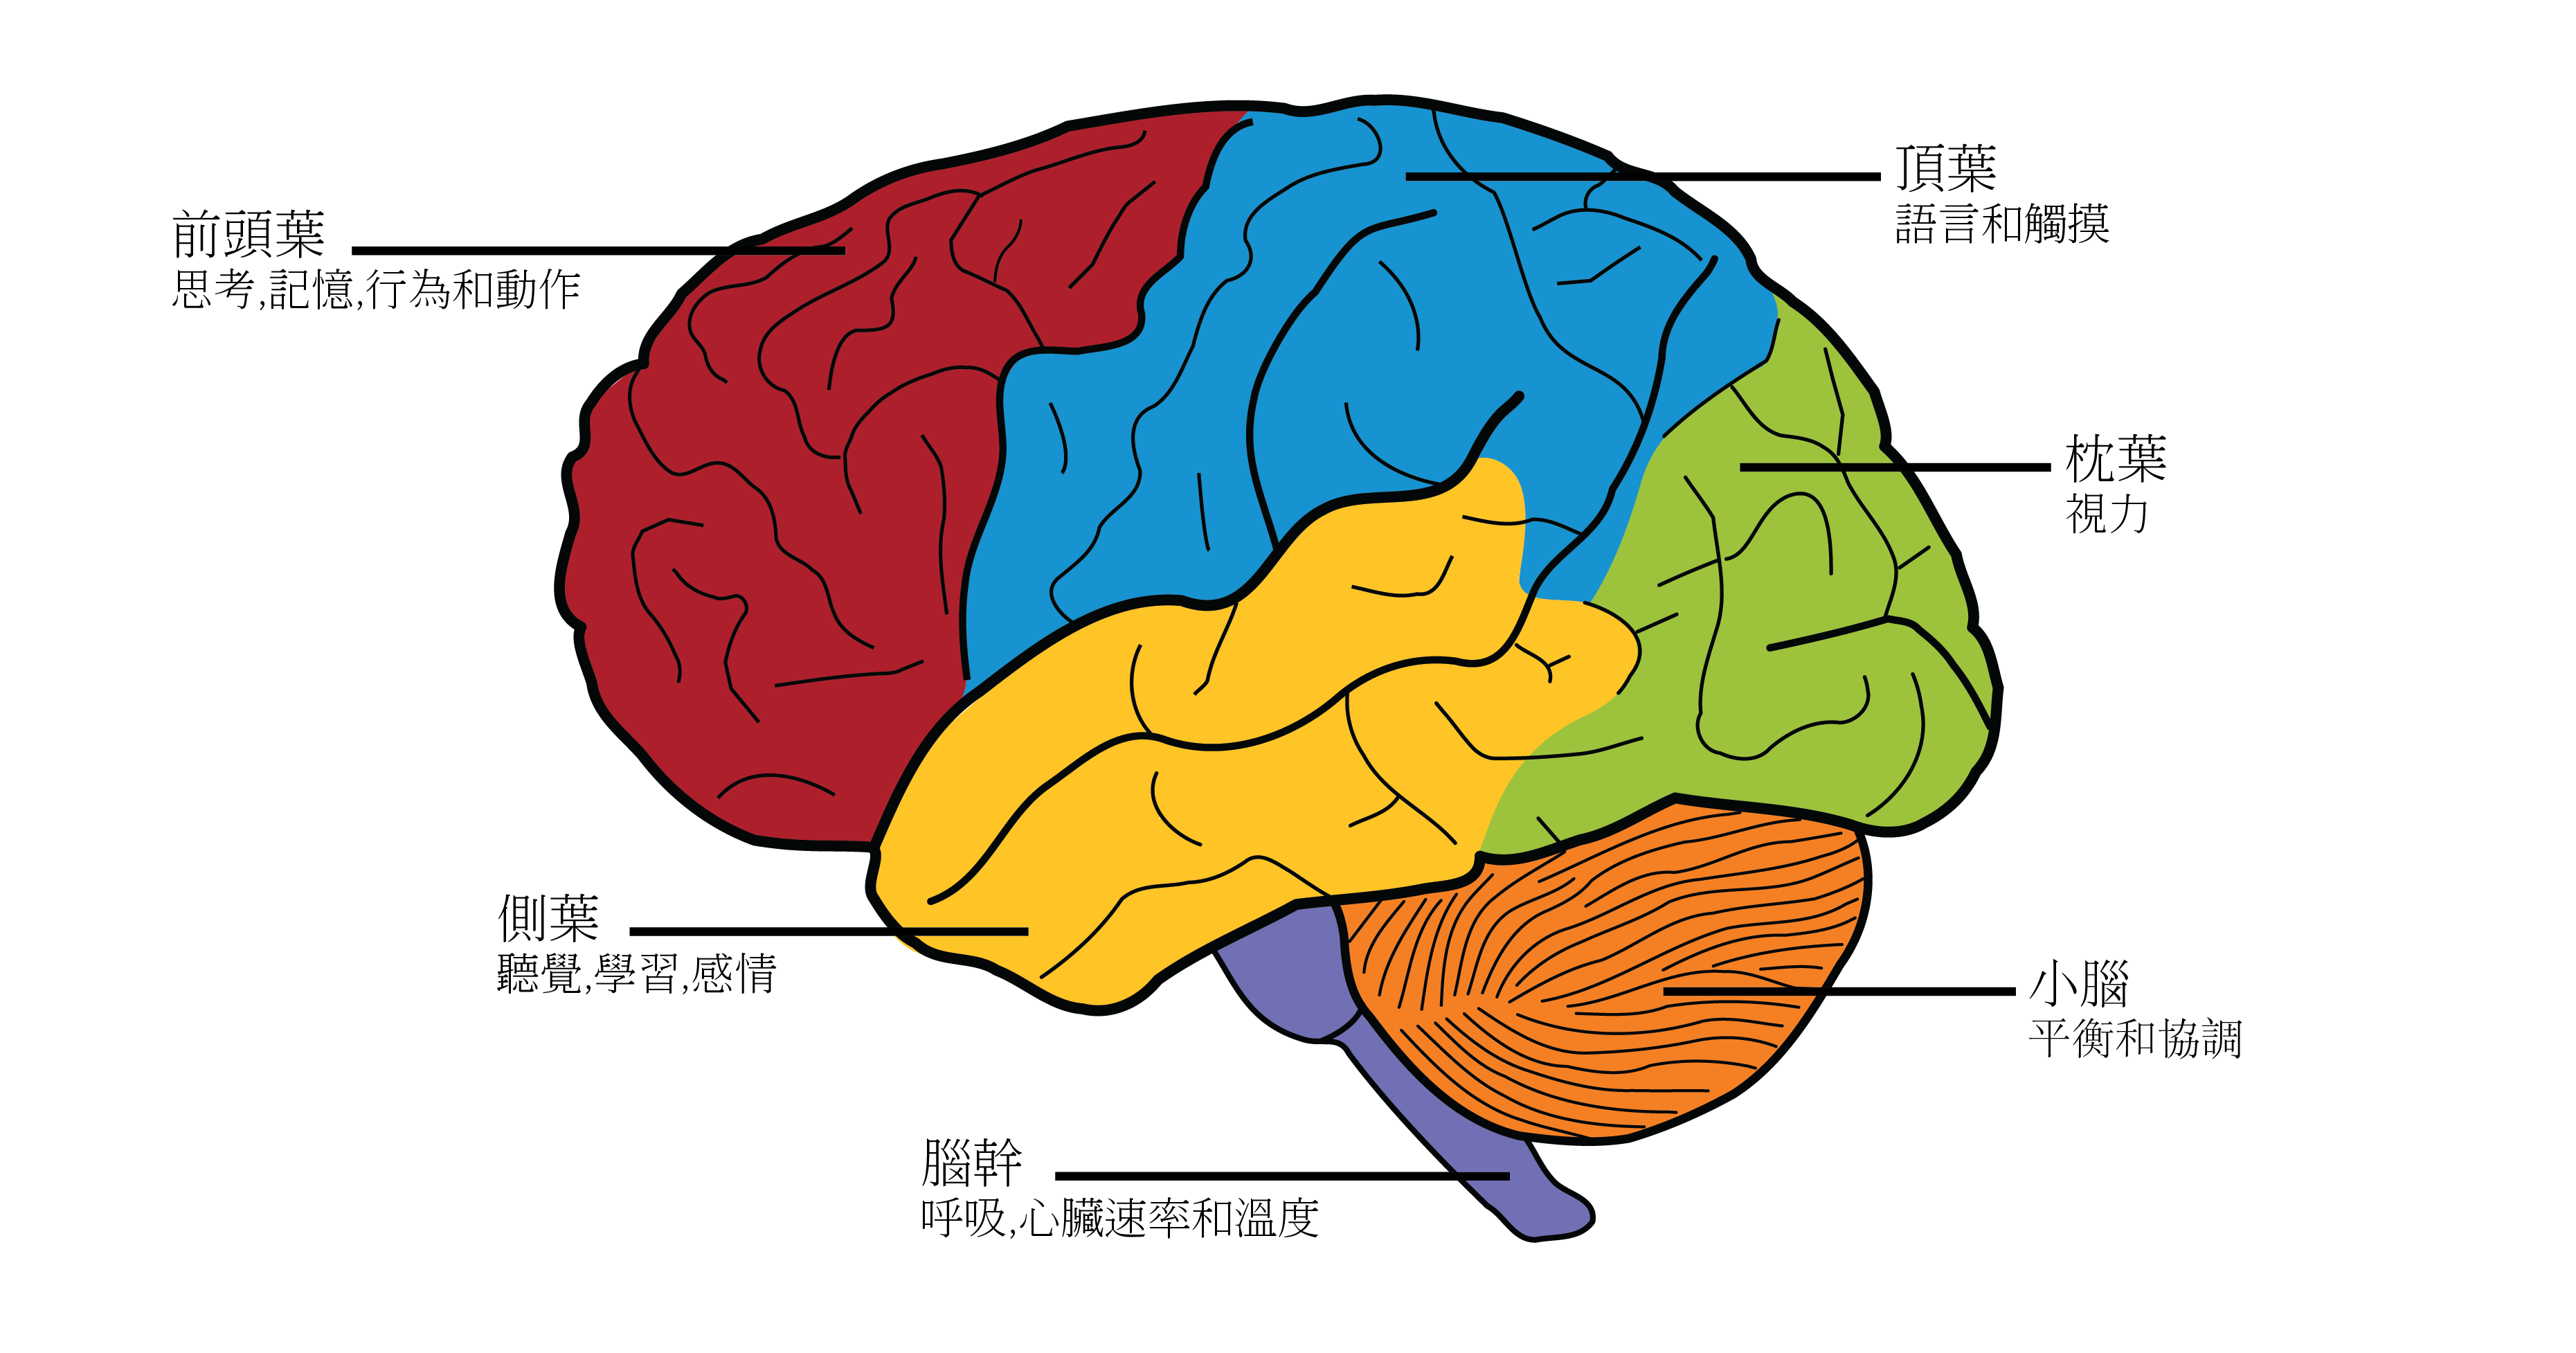 Lobes of the Brain, labeled in Chinese